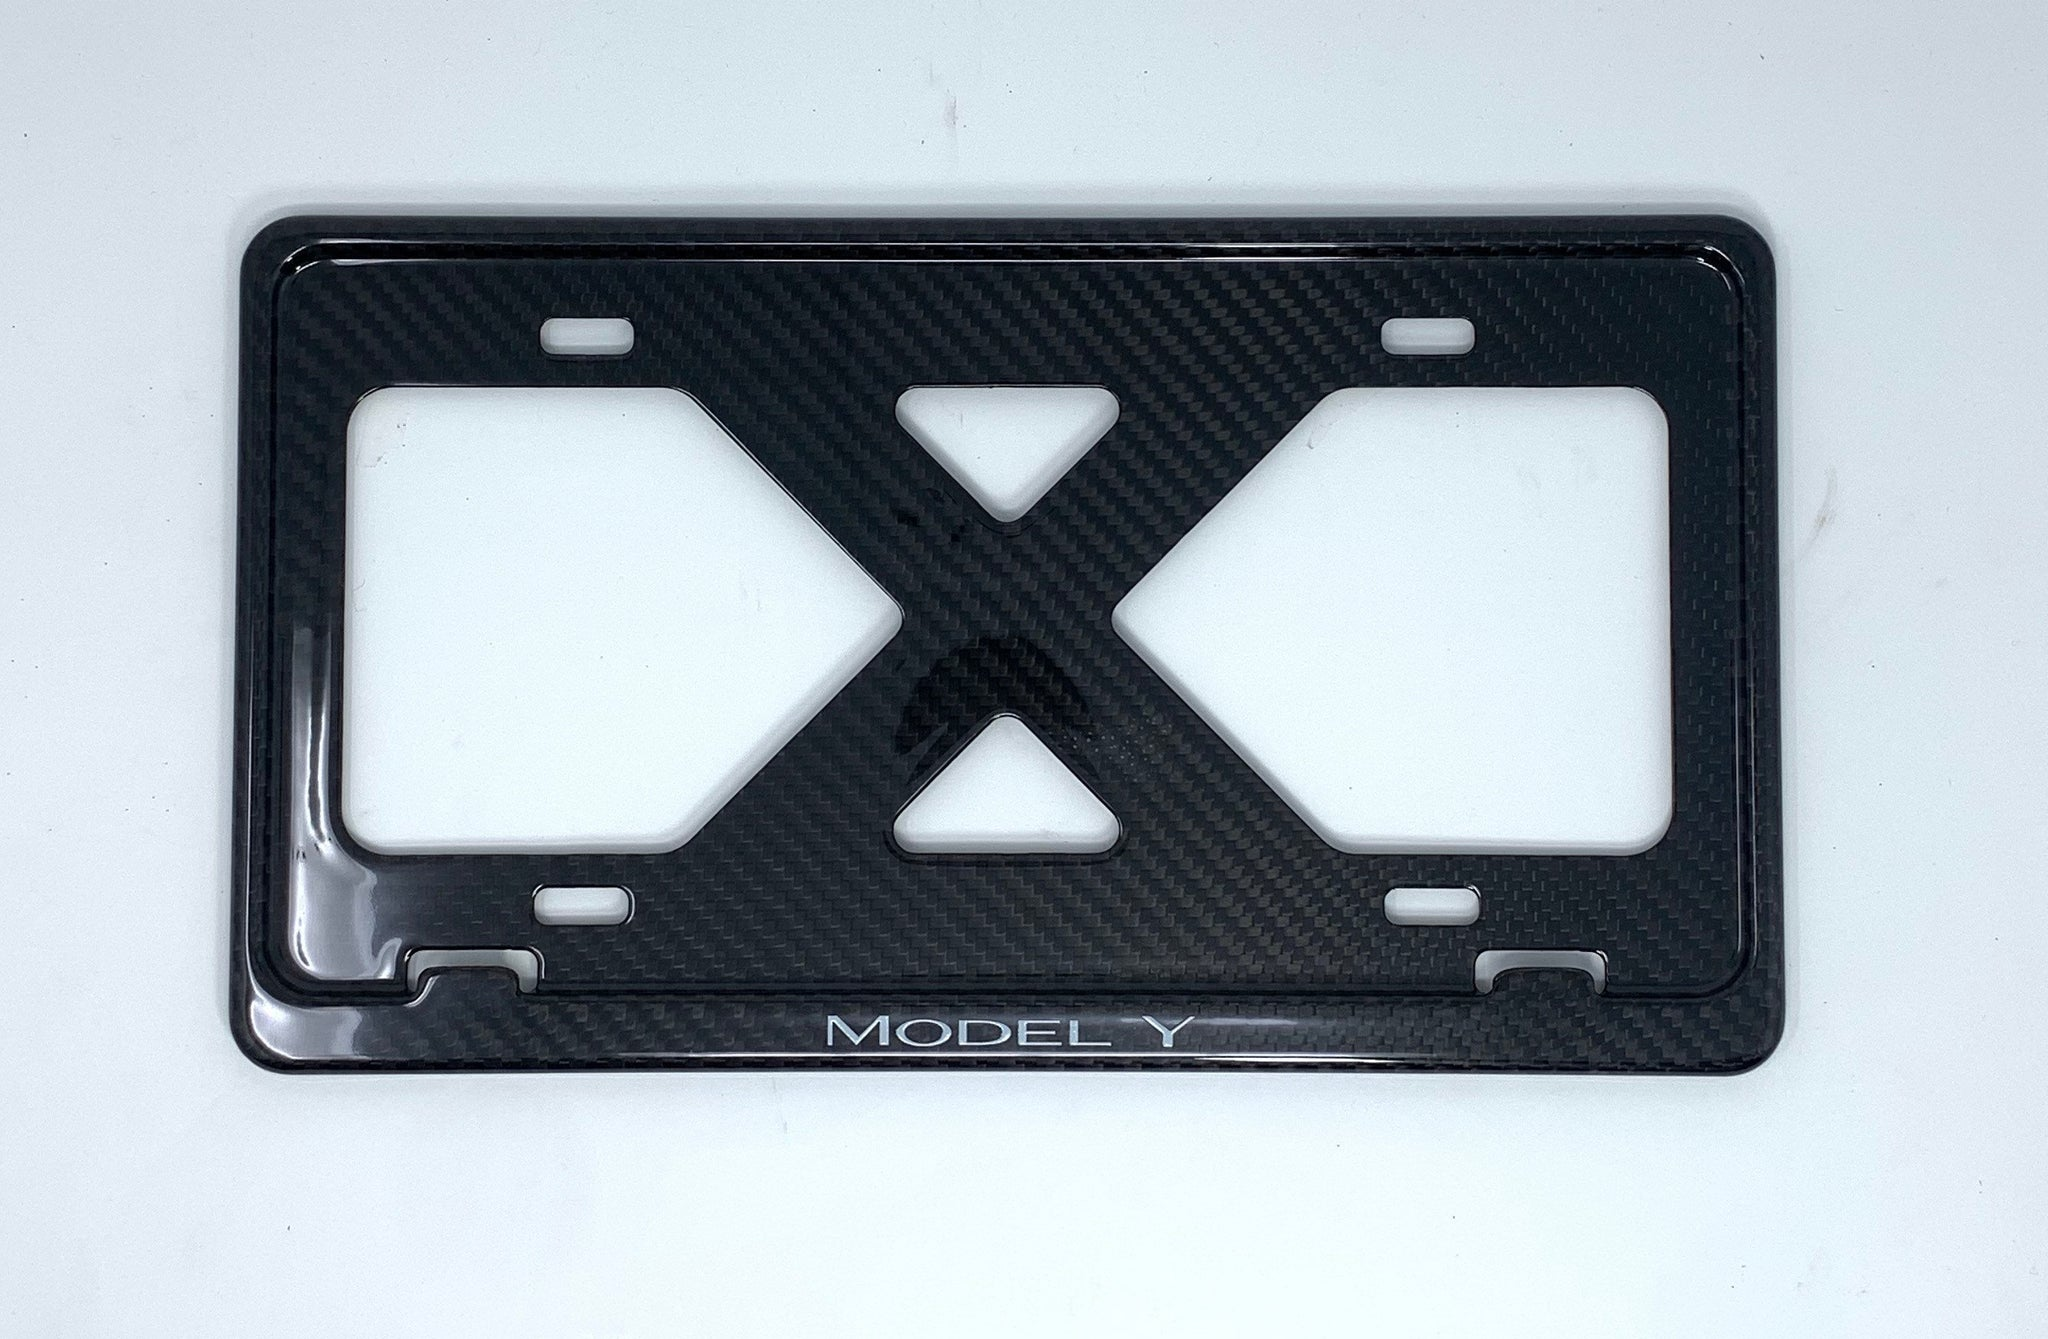 Tesla Model Y (White Slim Carbon Fiber License Plate Frame, No Decals, Full Warranty, BORINGmod, Limited Run, Handmade from Cali